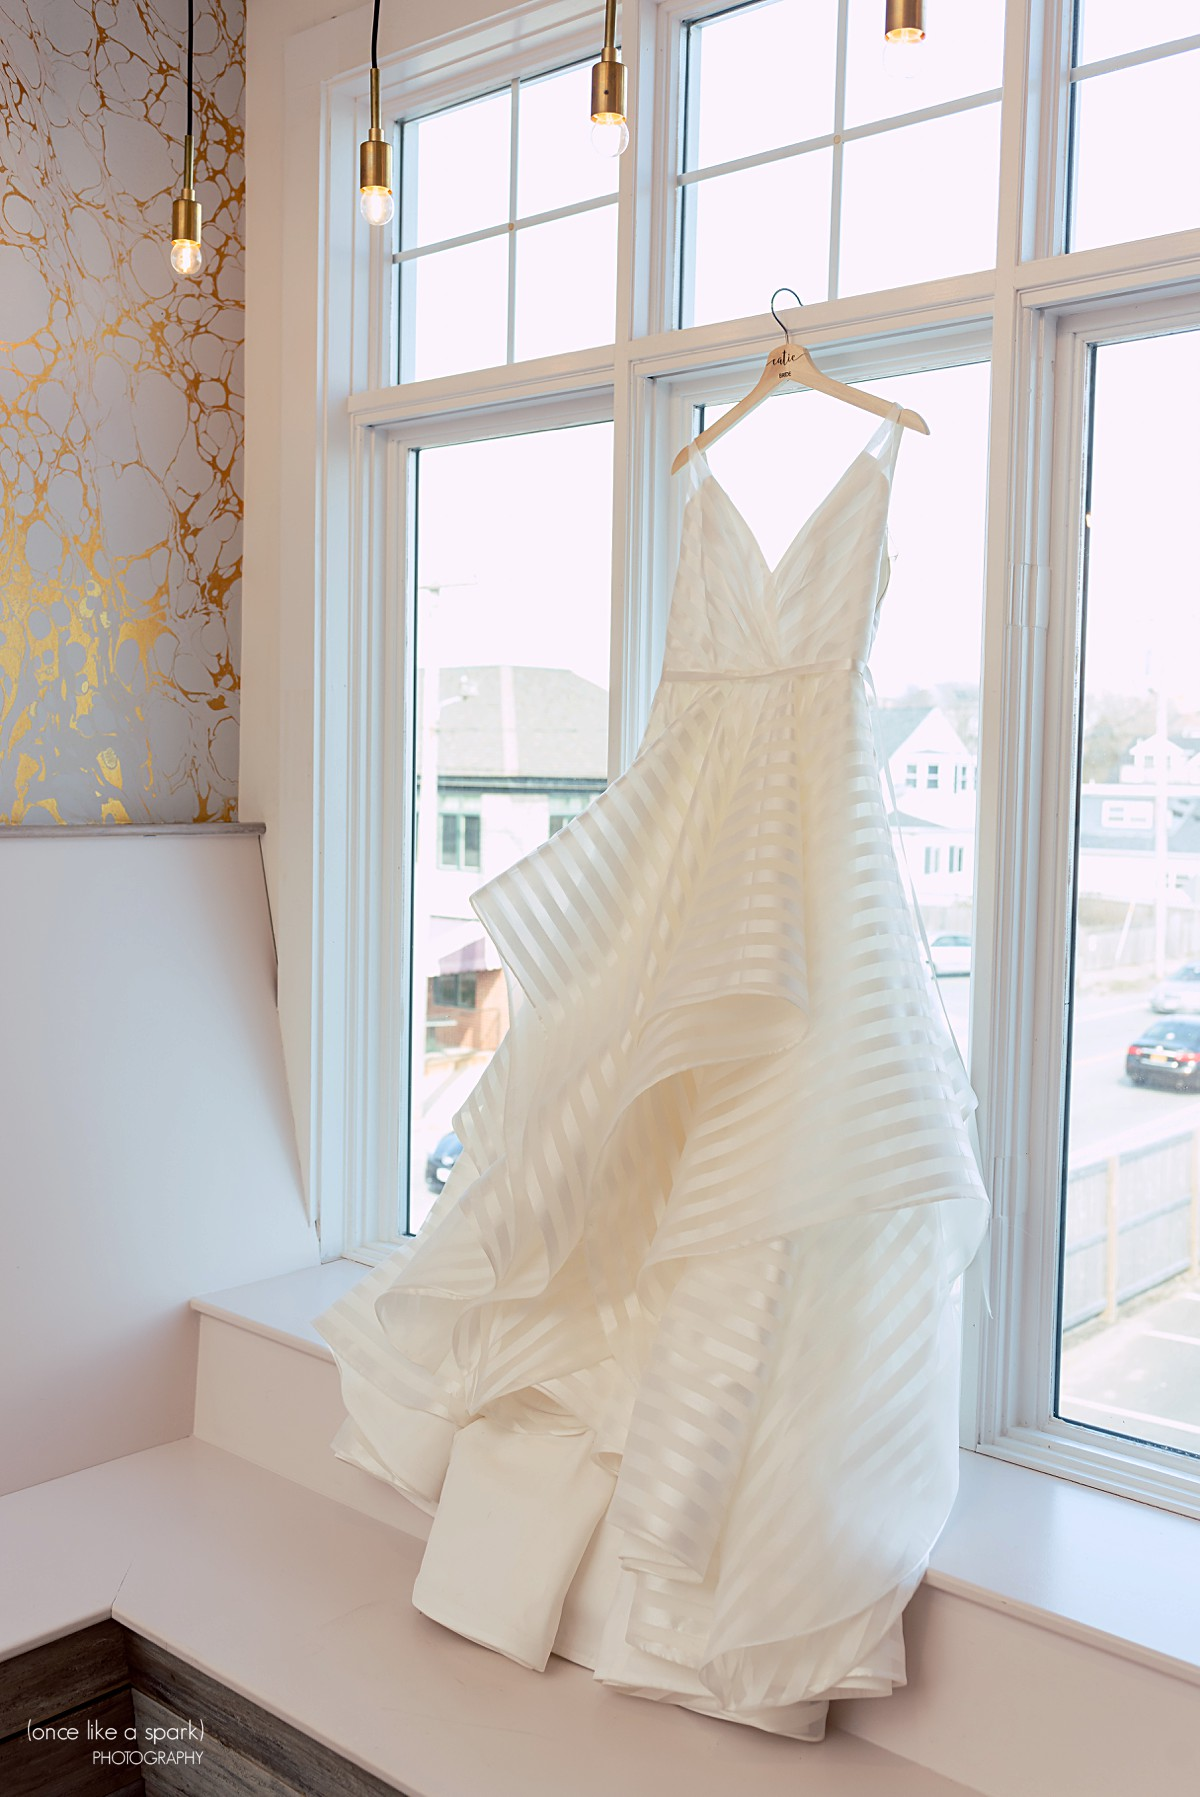 Newport Beach House Wedding In Middletown Ri Catie Joe With Lisa Once Like A Spark Photography